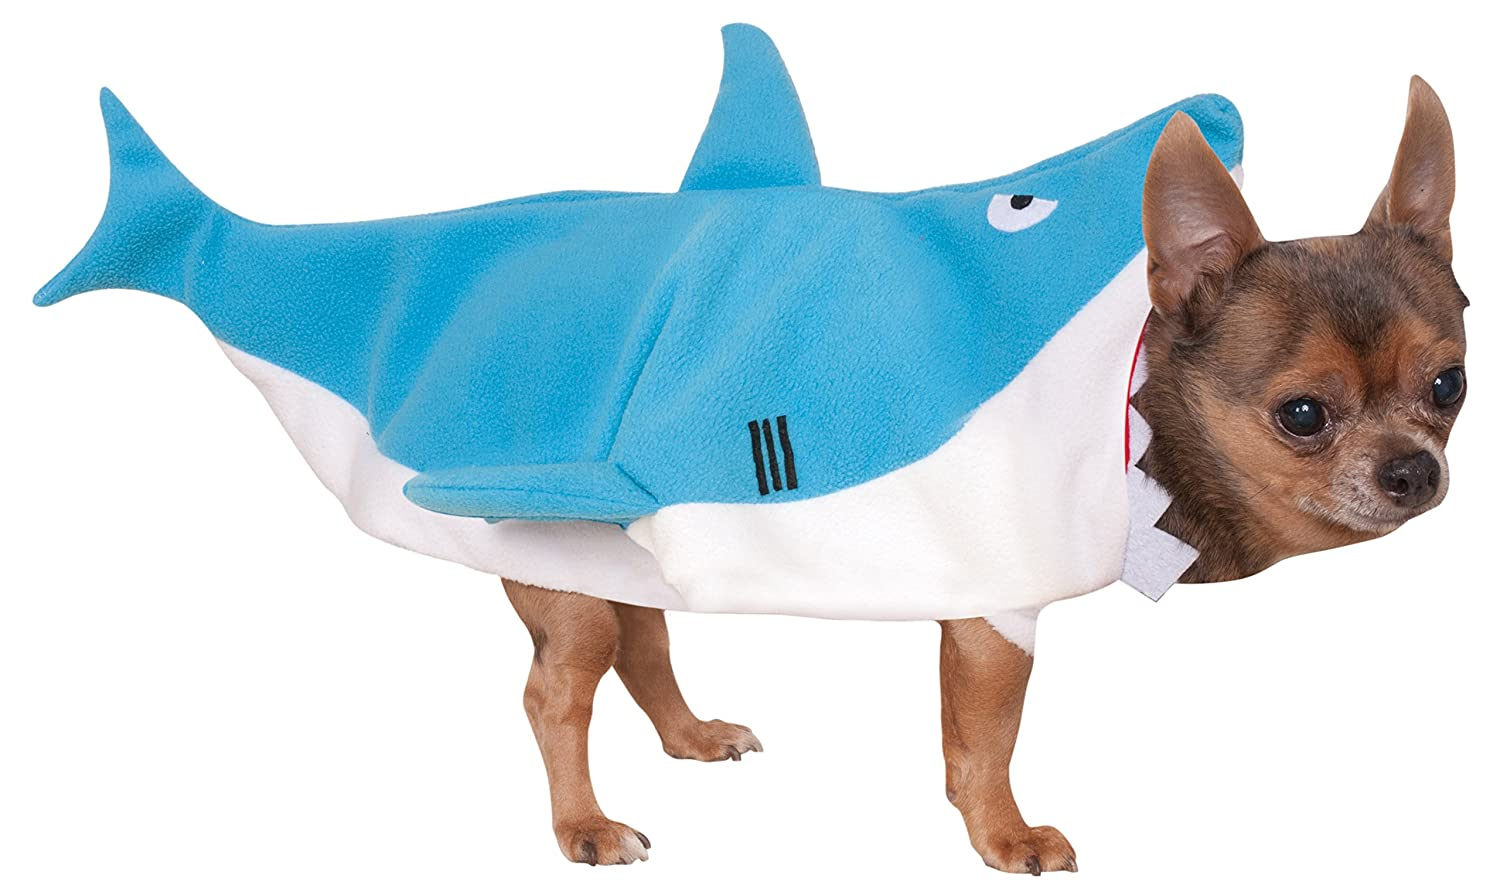 Rubie's Shark Pet Costume Rubie's Shark Pet Costume Large Rubies Costume Company 580080 L